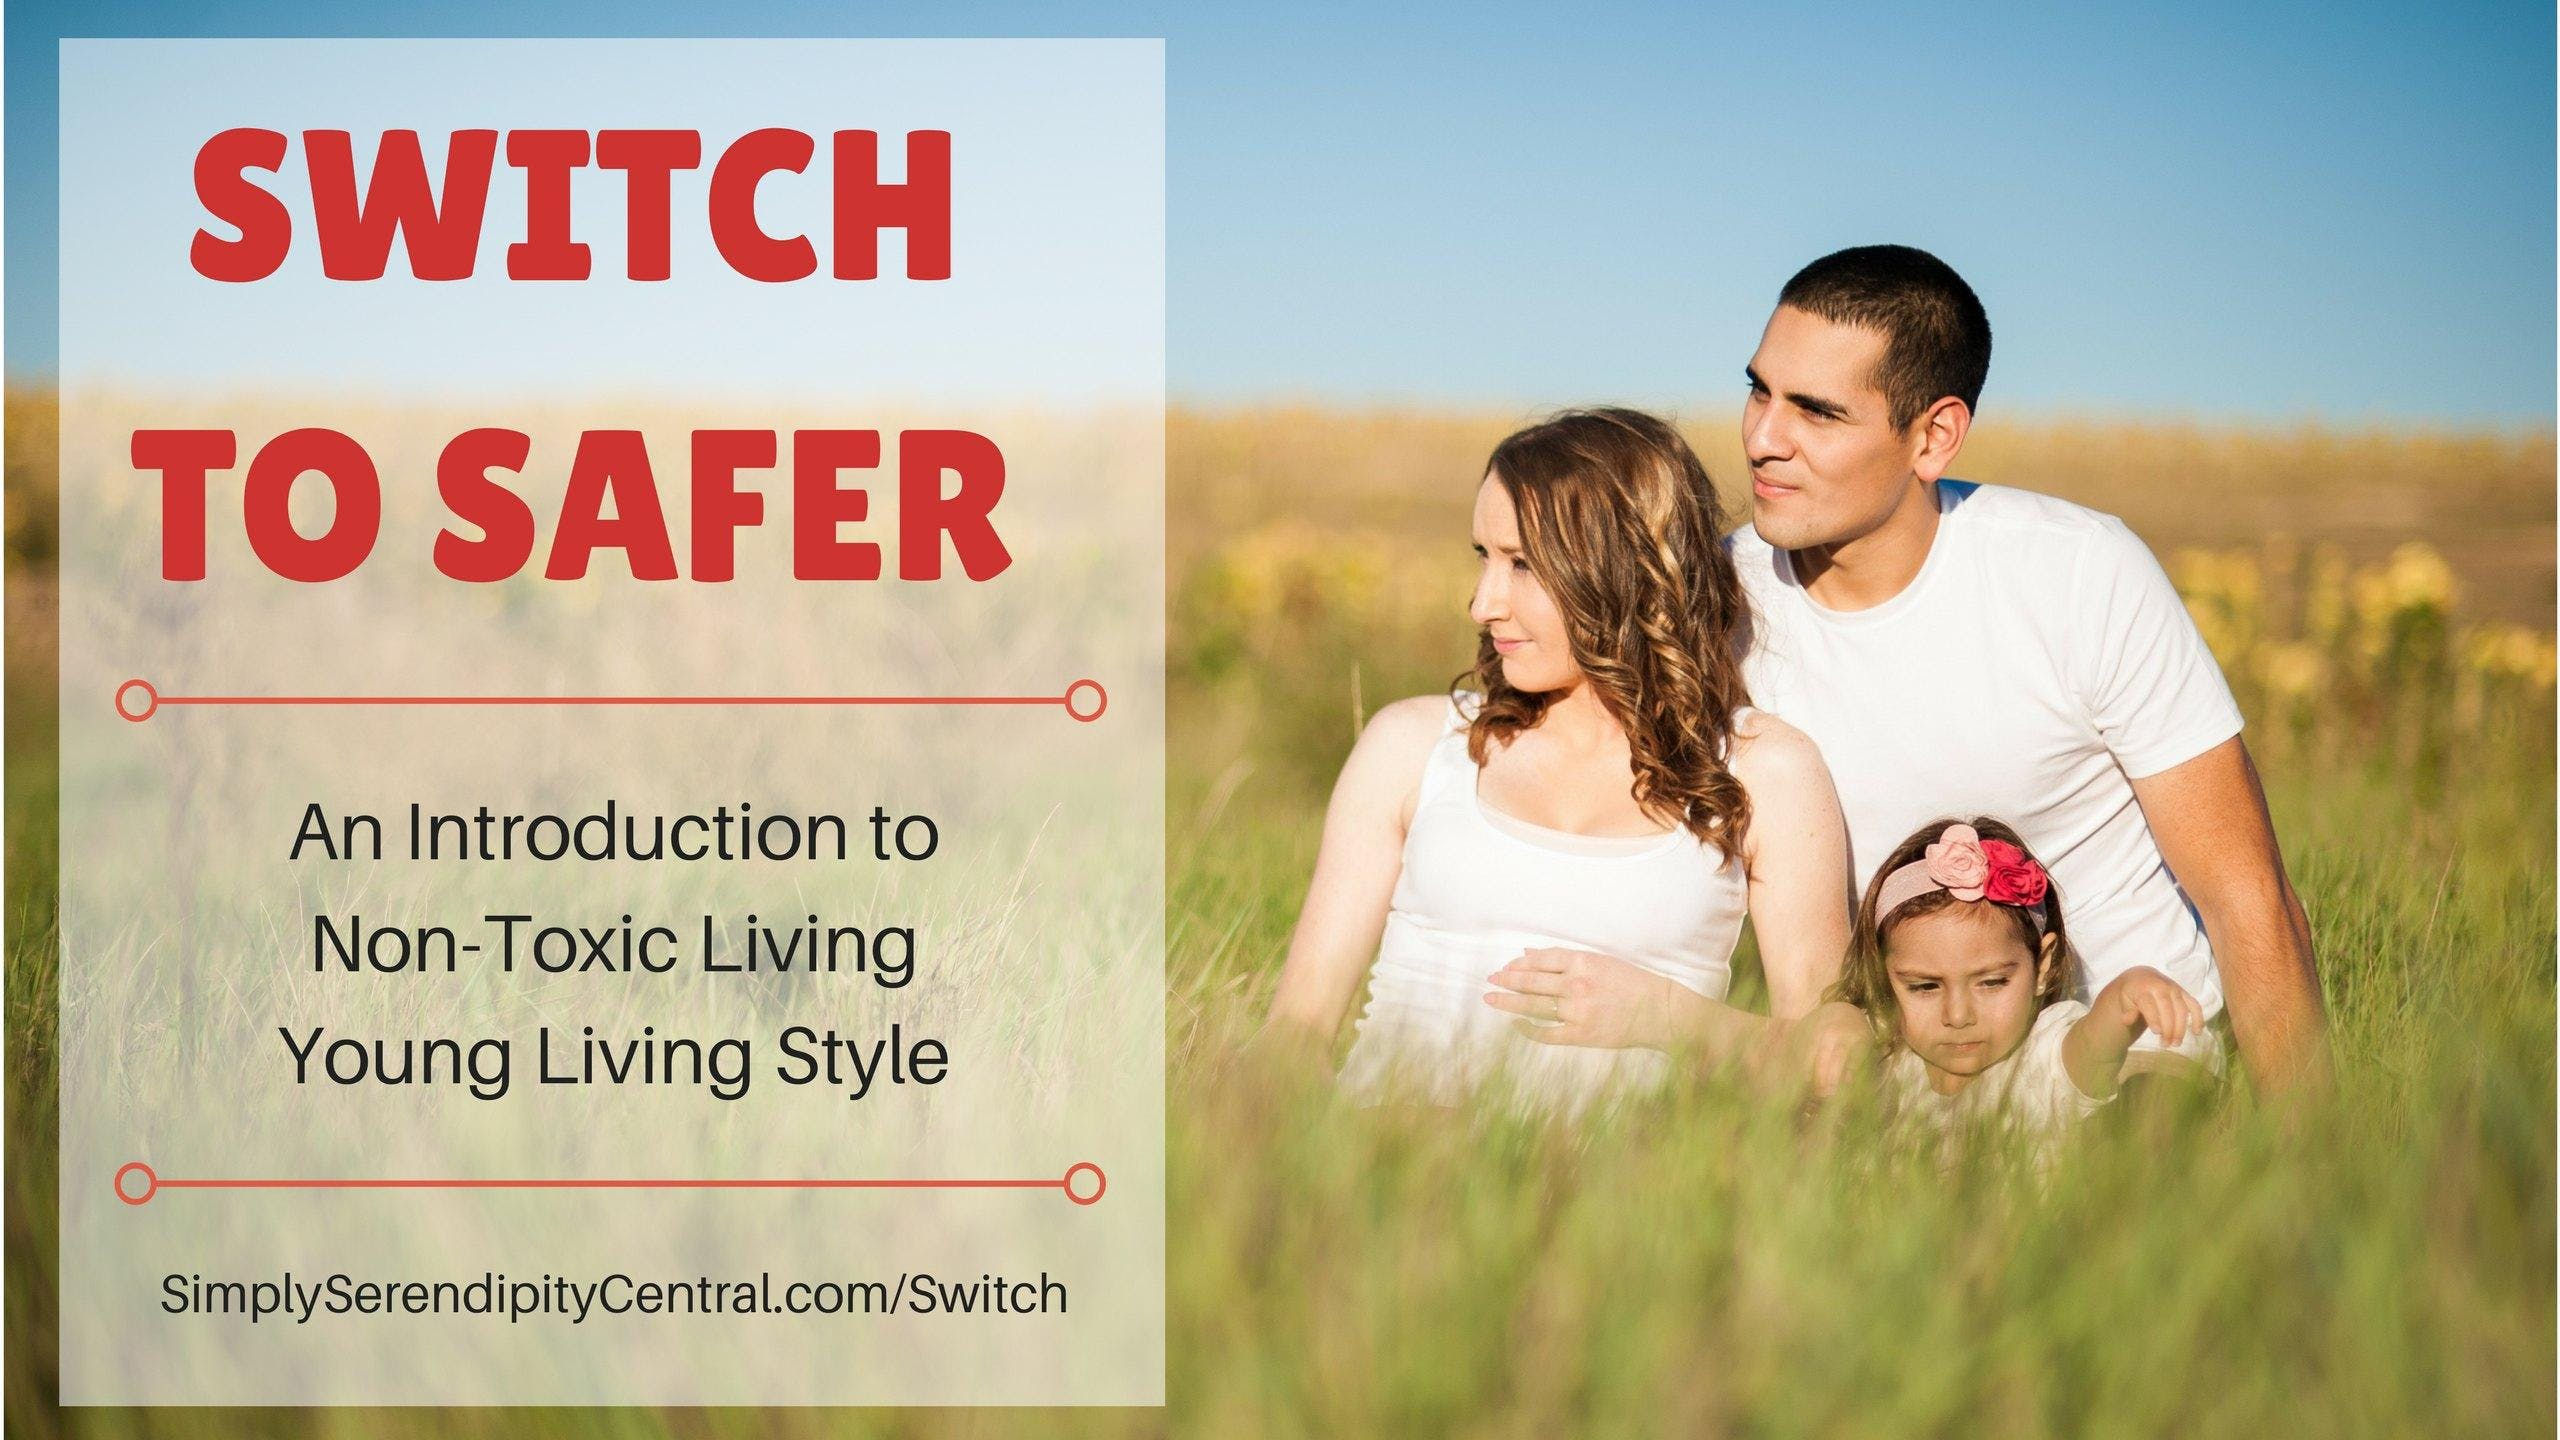 #SwitchToSafer: Optimal Health with Young Liv